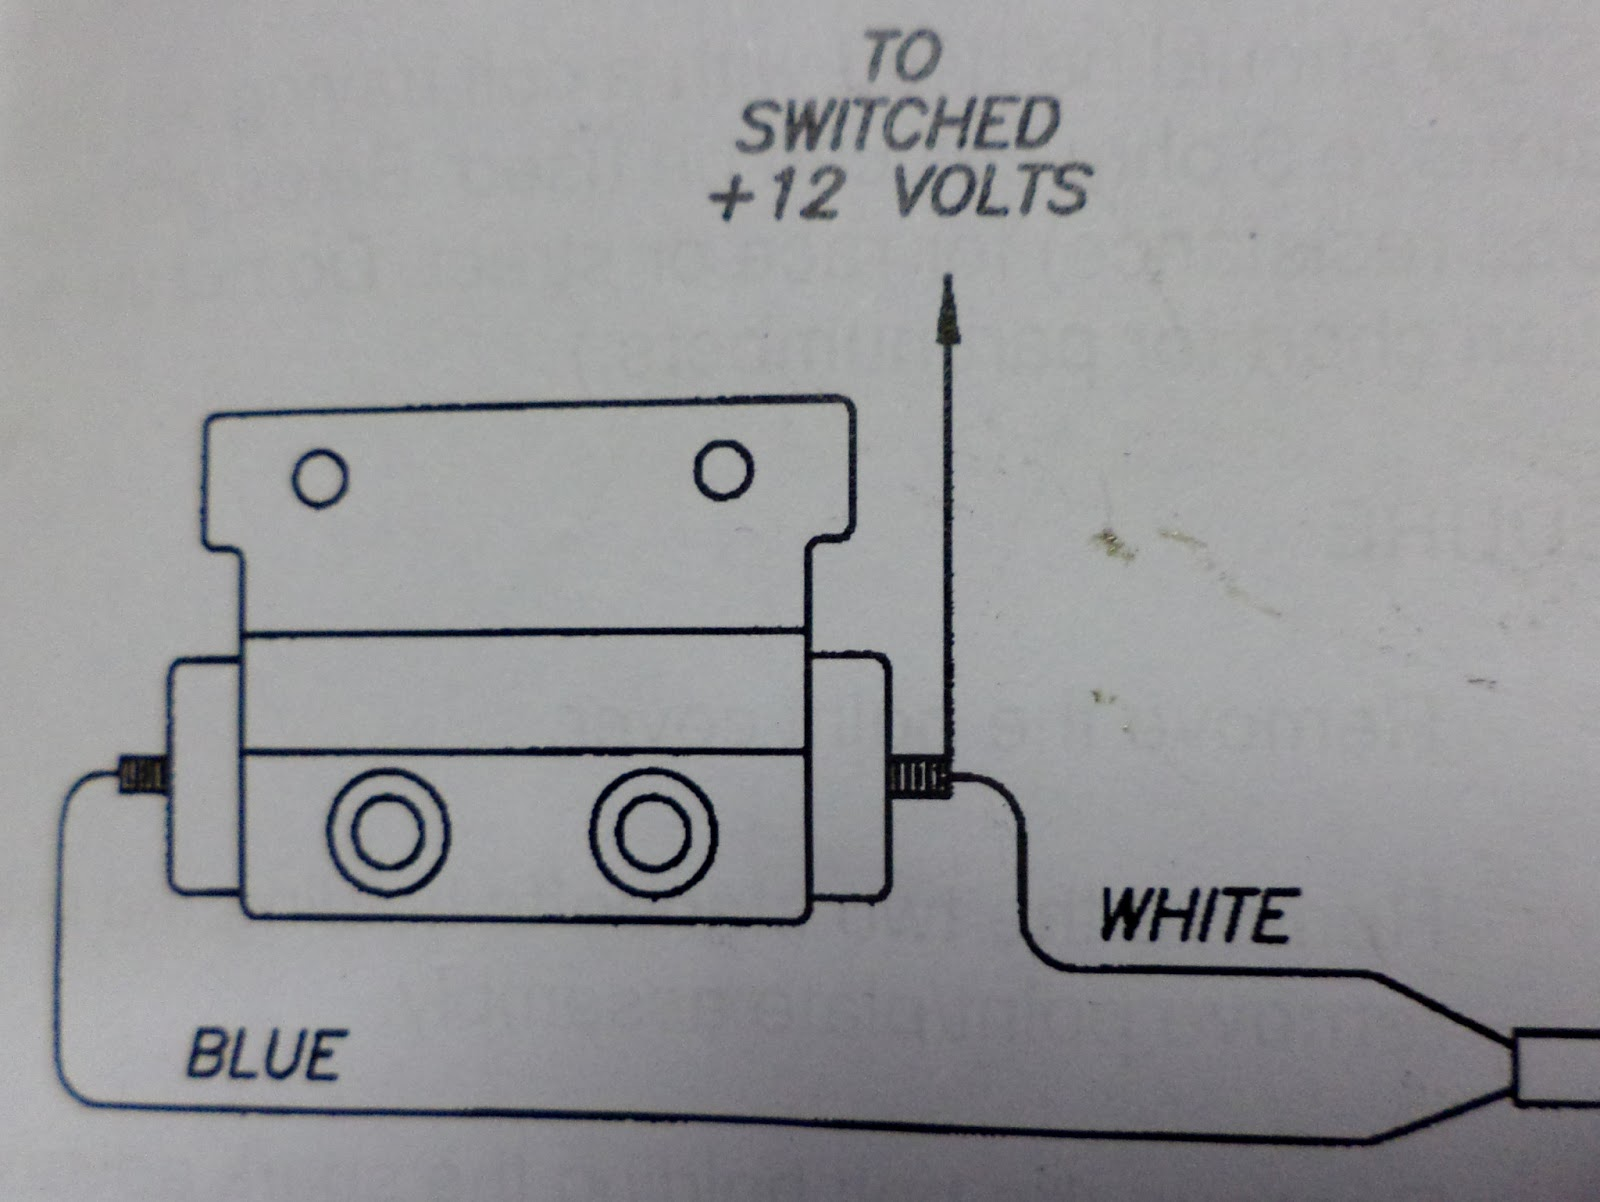 DSC00049 dyna wiring diagram atlas wiring diagram \u2022 wiring diagrams j 1994 Ford Ranger Ignition Diagram at creativeand.co